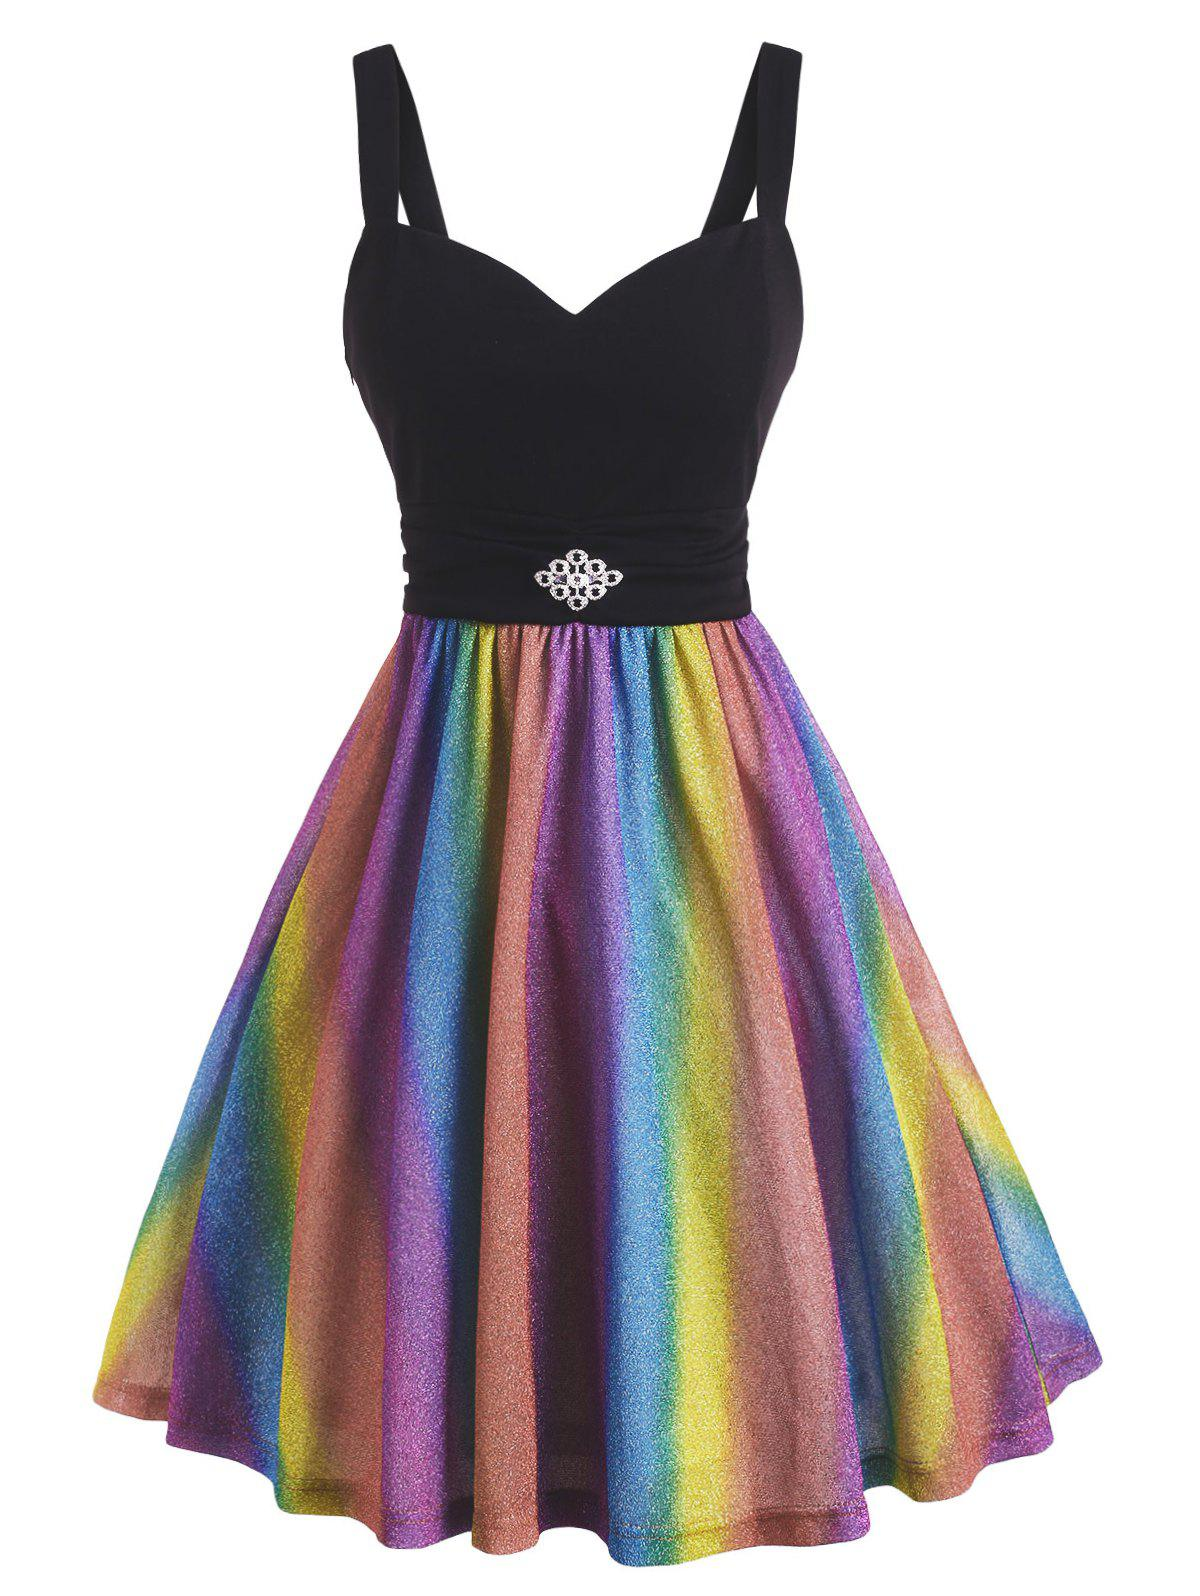 Metallic Thread Rainbow Ruched Rhinestone Pin Waist Dress - multicolor XXL